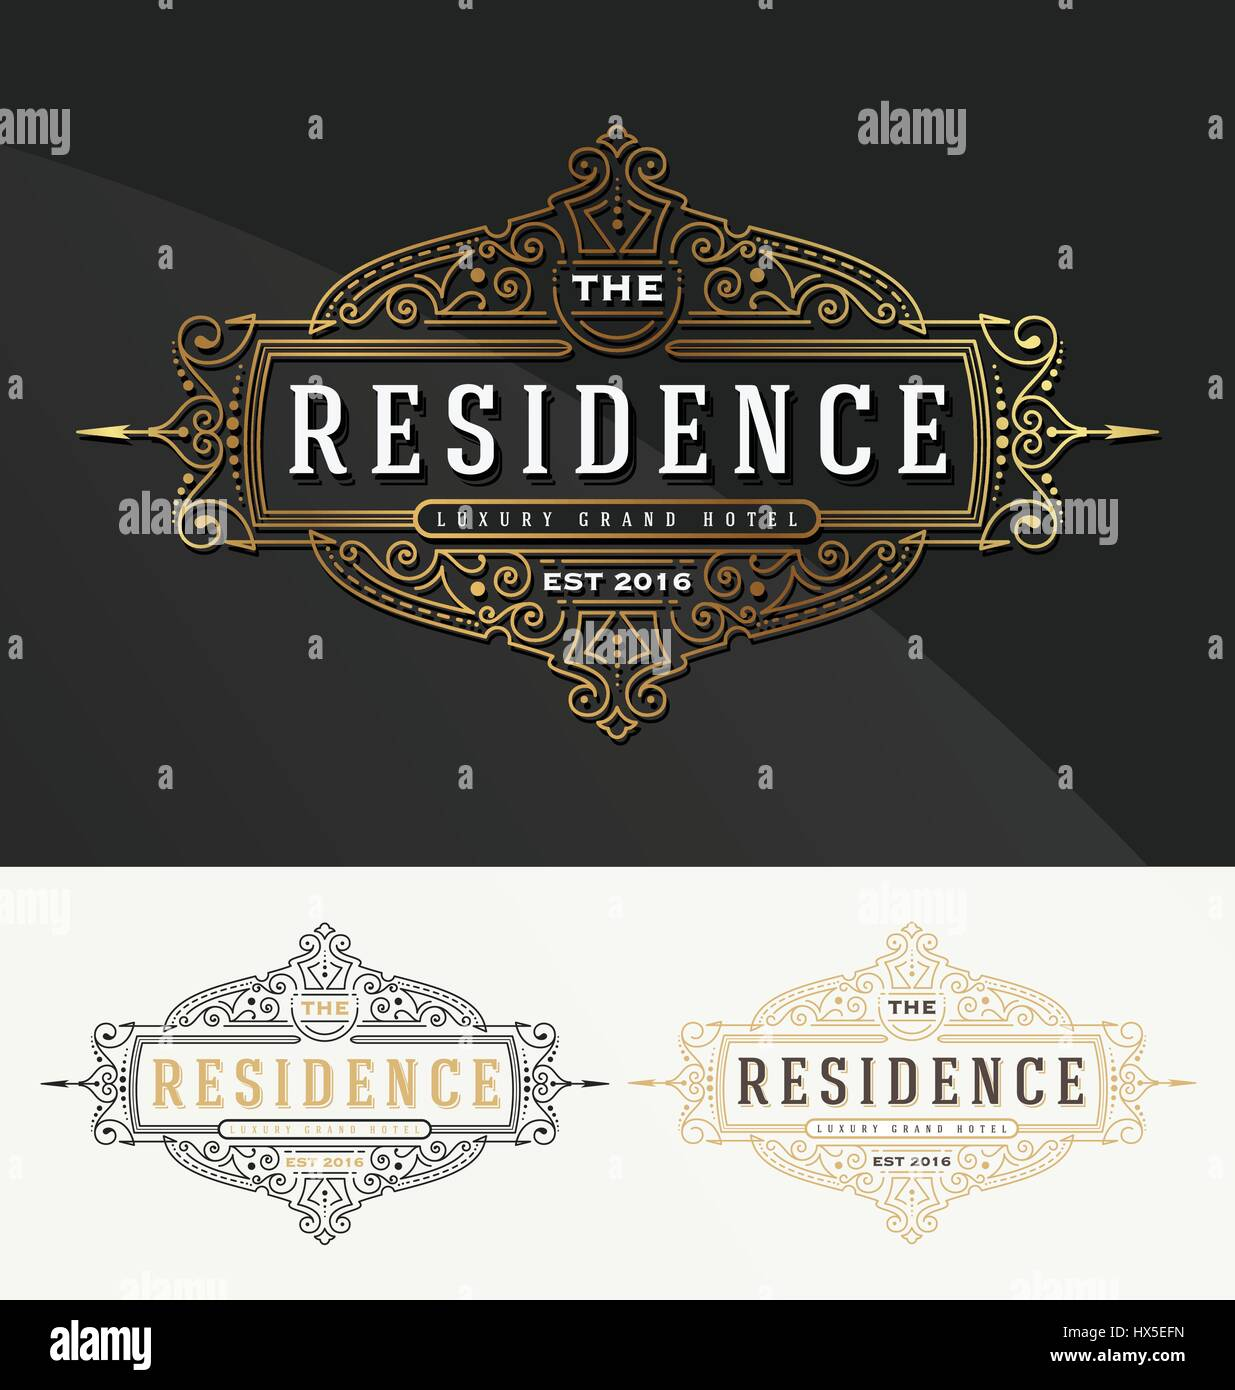 Vintage flourish frame logo template for Residence, Restaurant ...